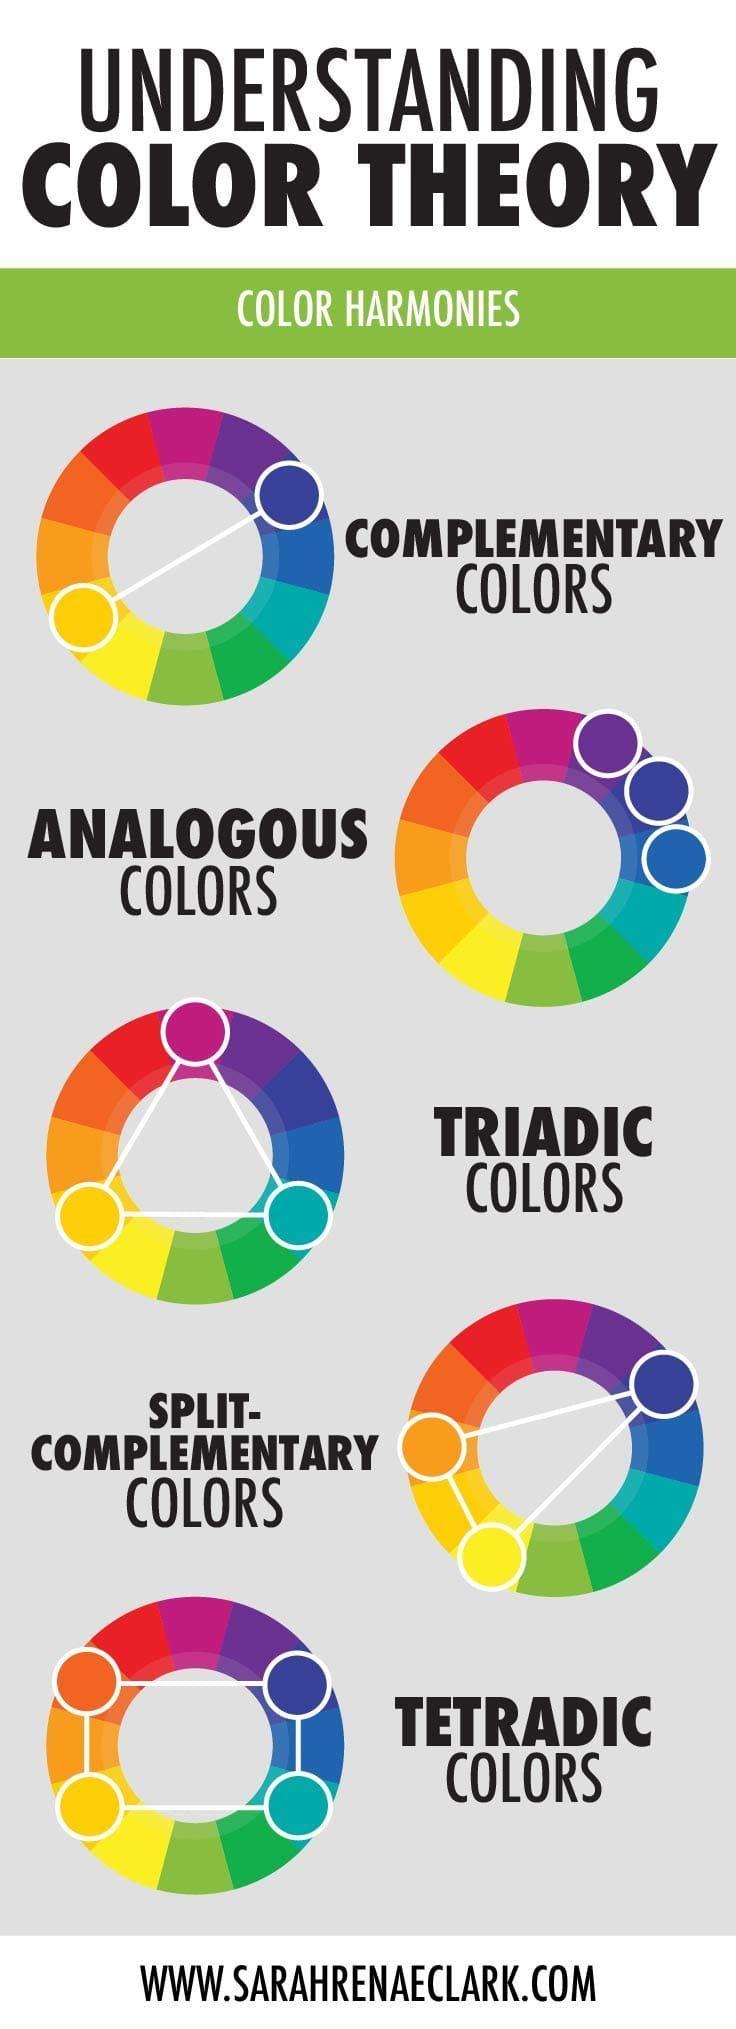 Understanding Color Theory The Basics Color Theory Split